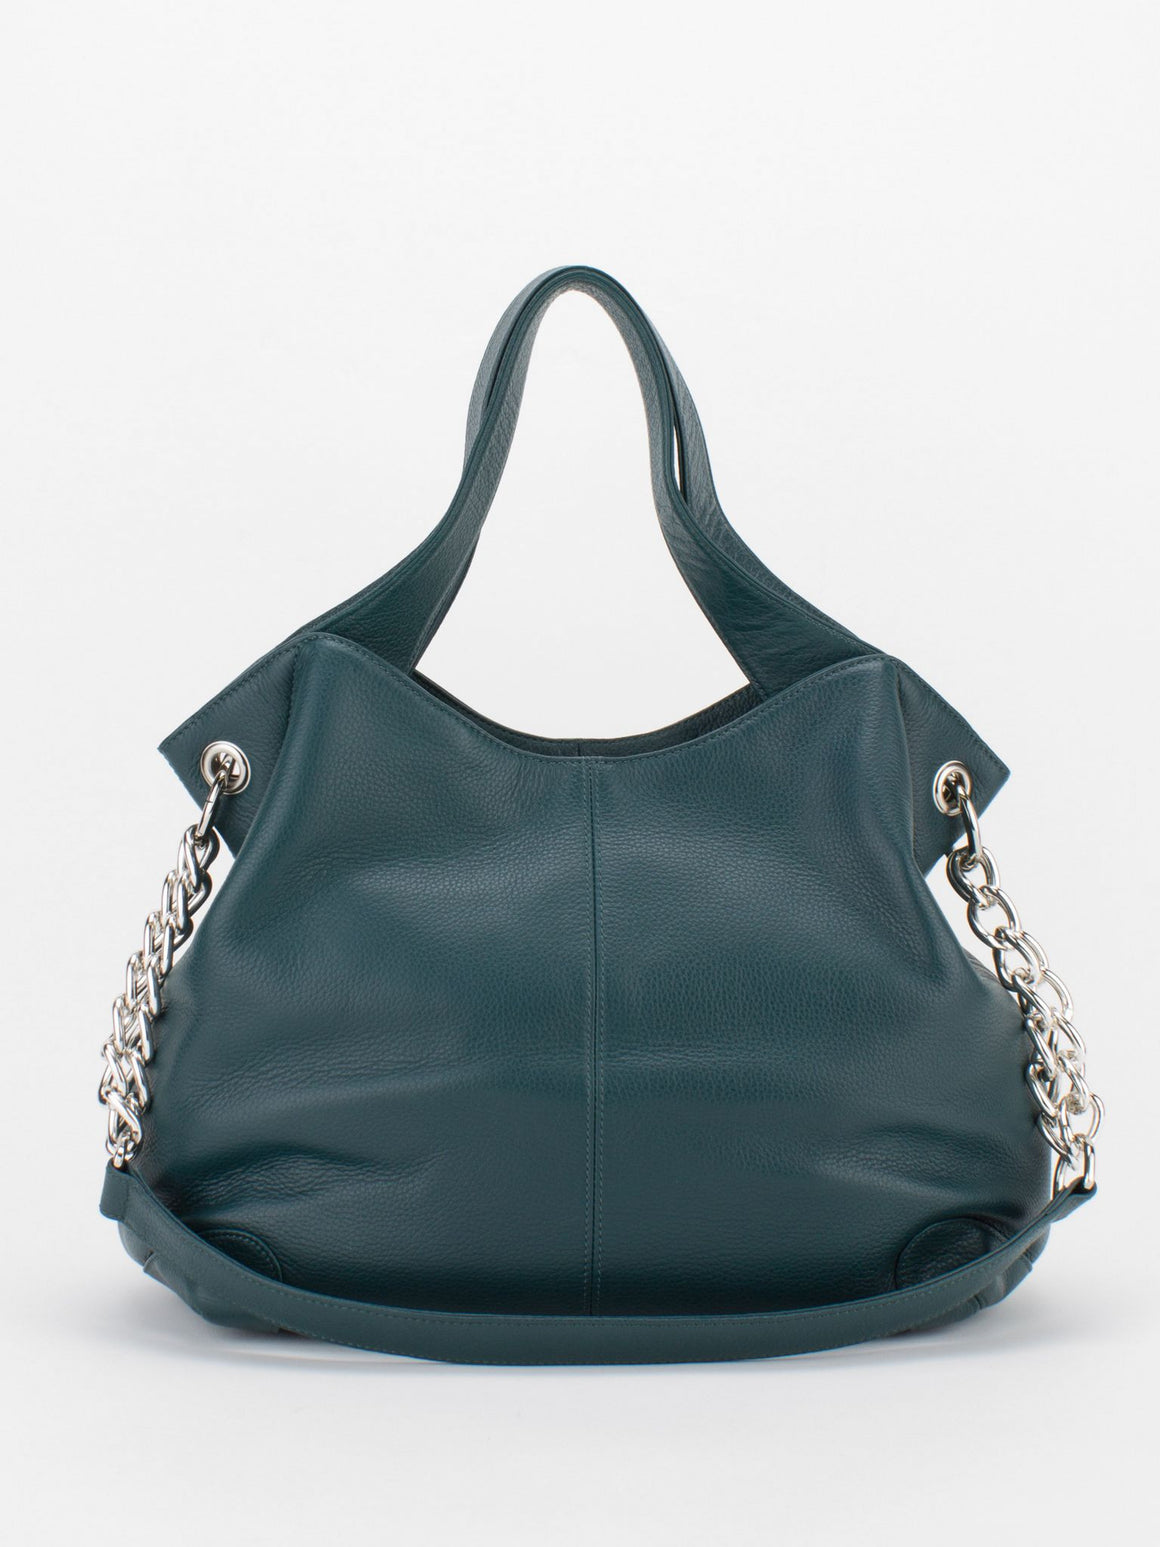 SHARON Chain Accent Leather Bag - Teal